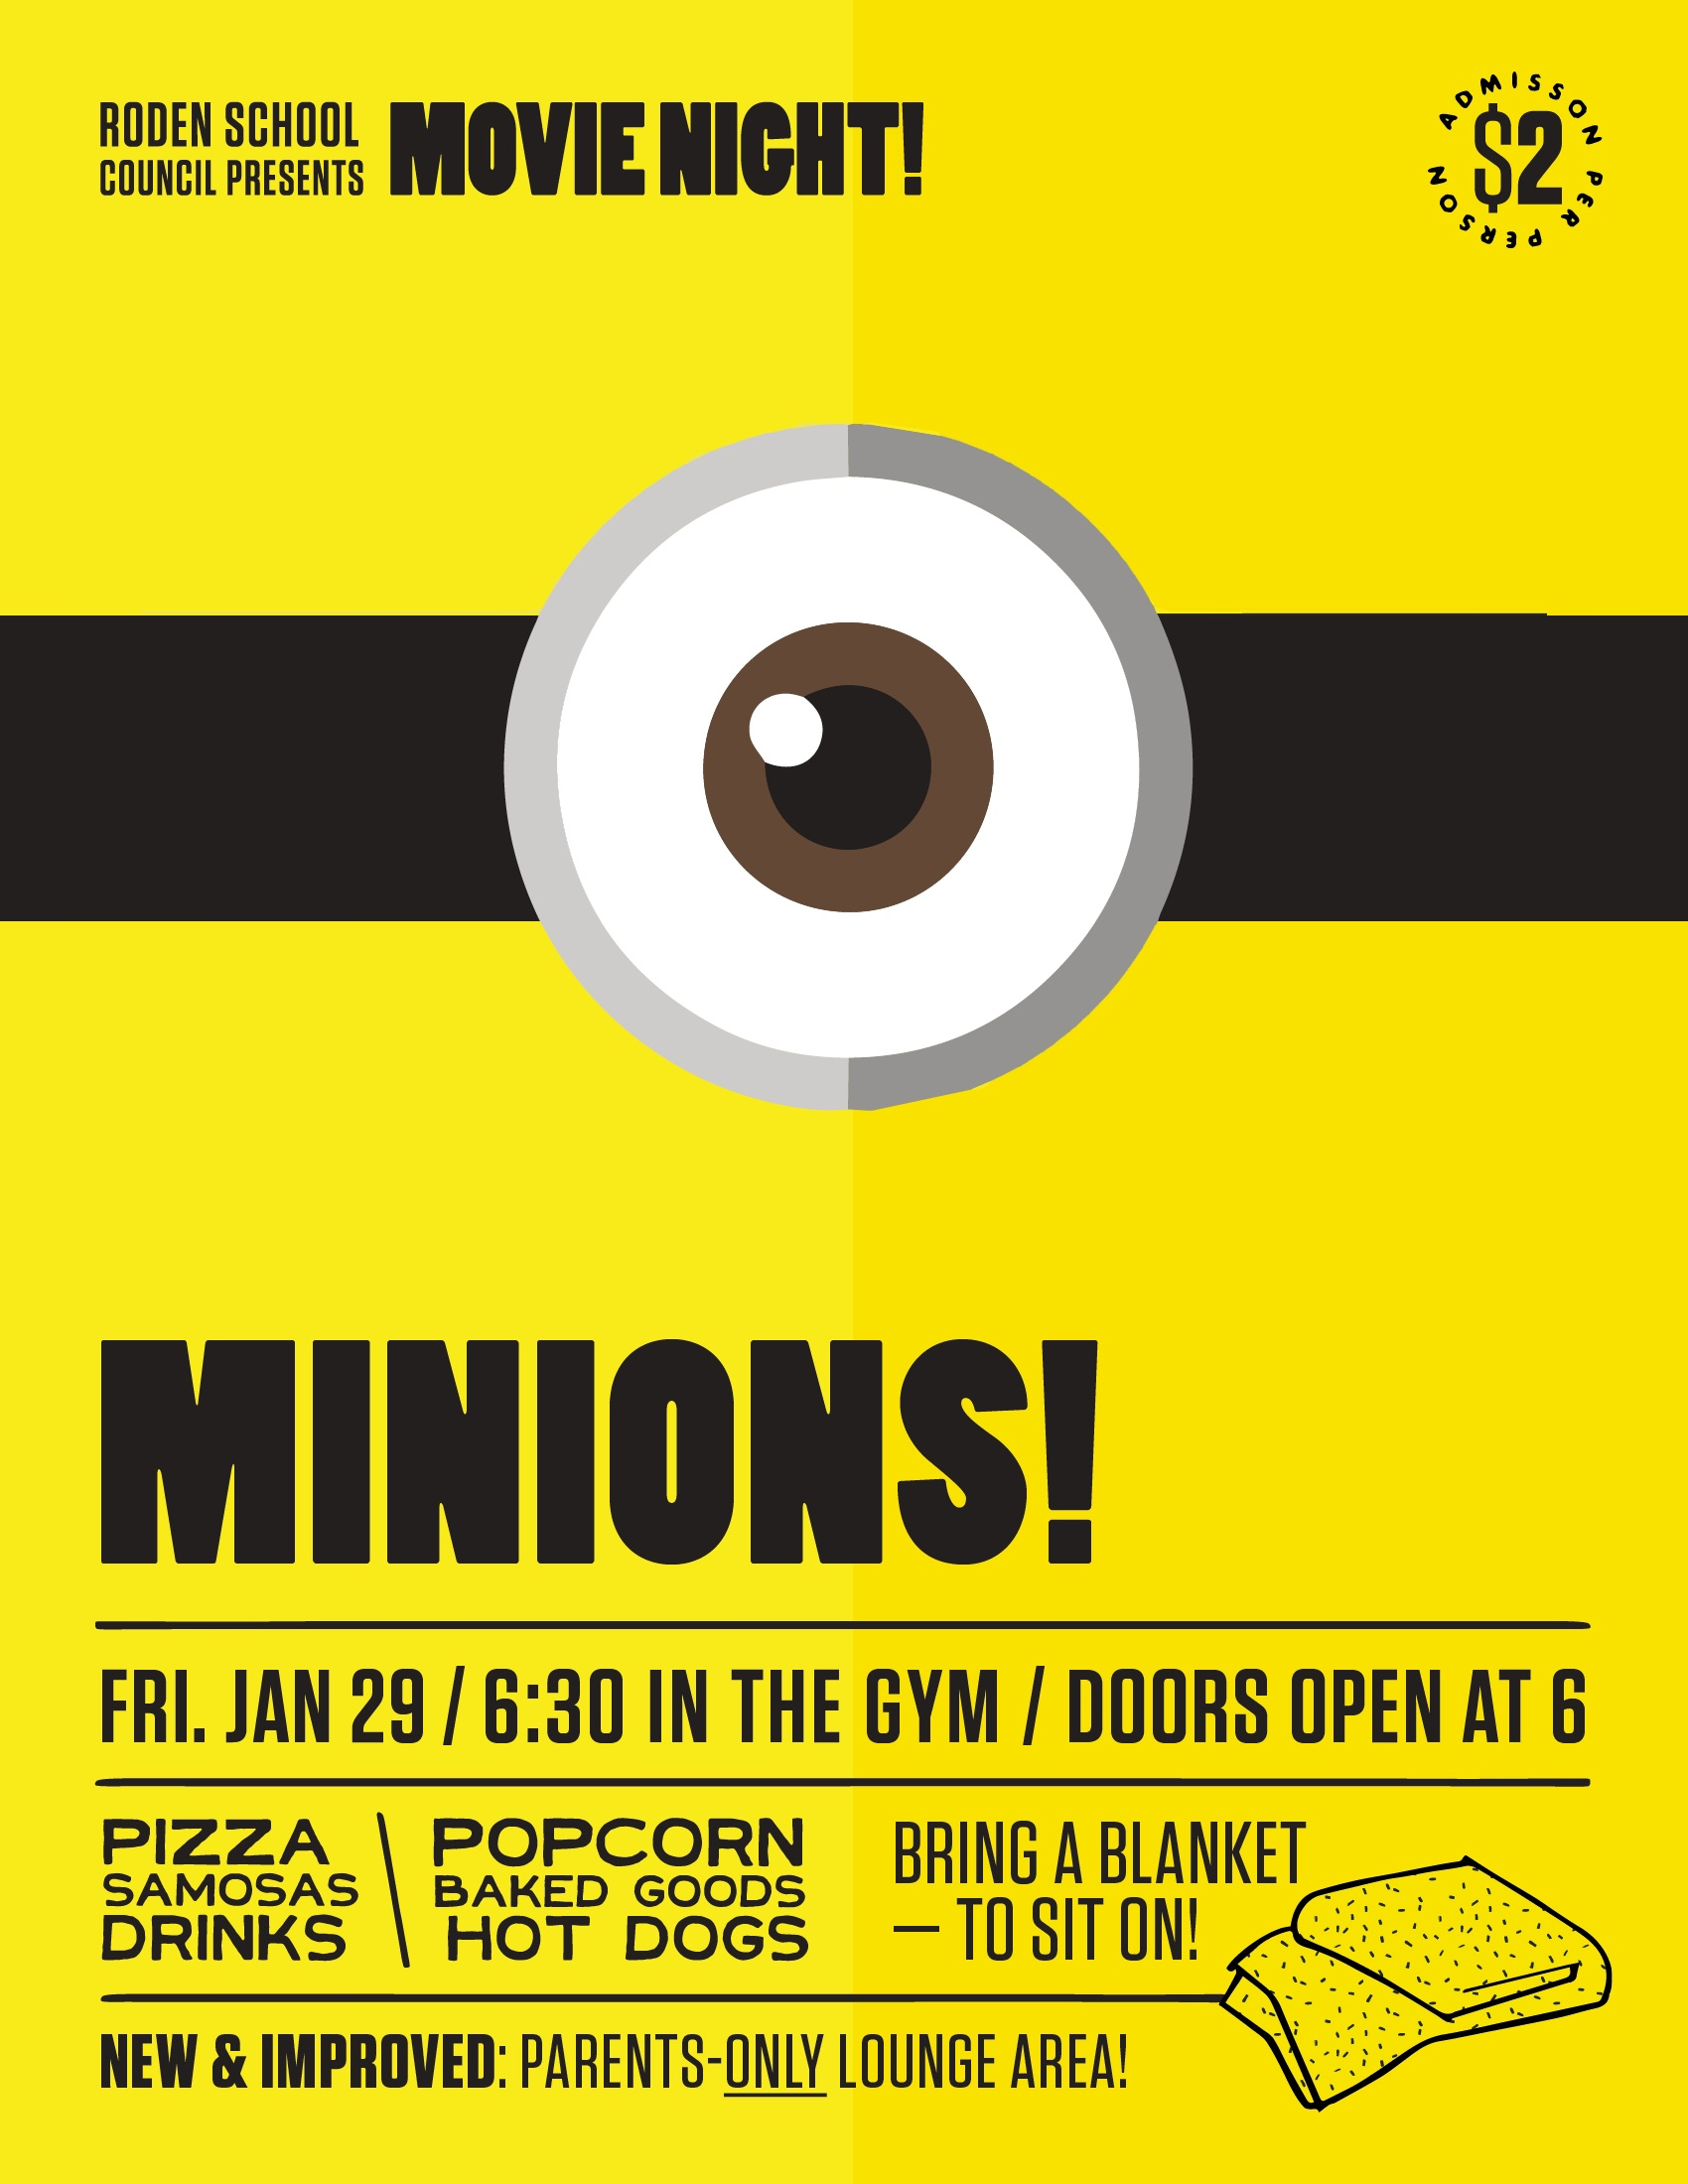 Roden Movie Night Poster (Minions)